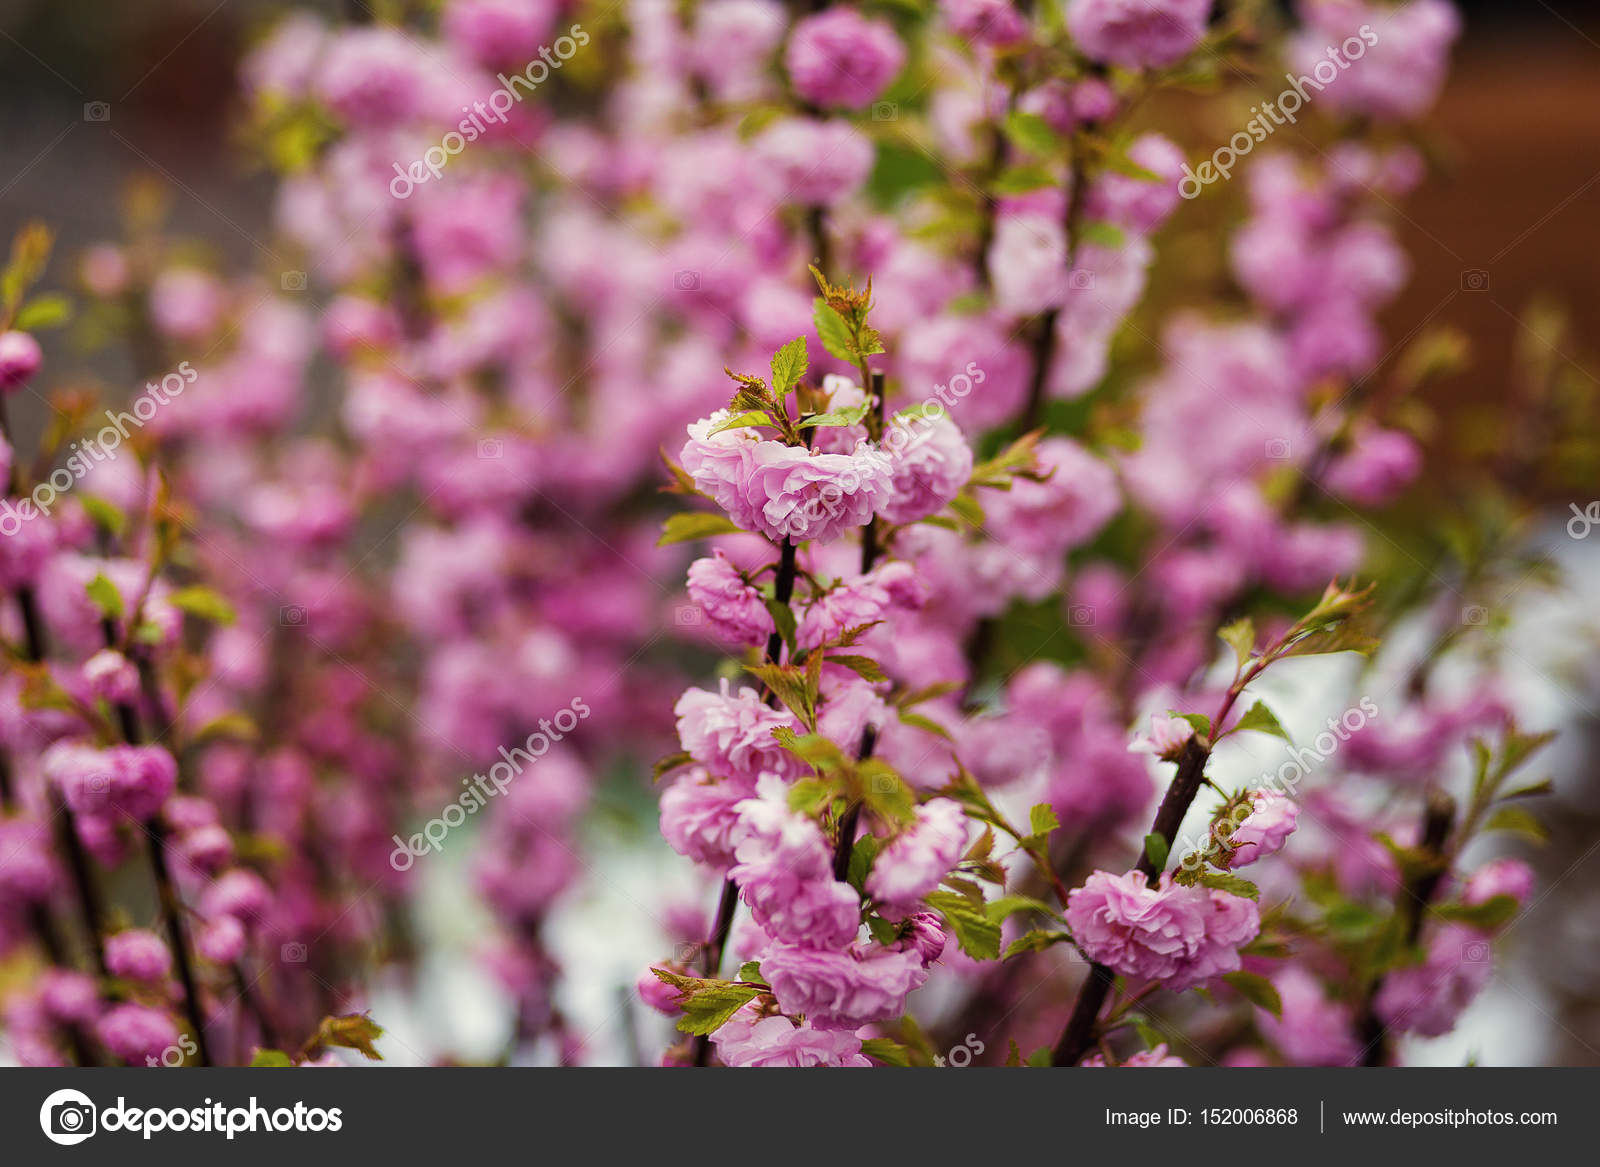 Branch with bright beautiful pink flowers of hawthorn treepink branch with bright beautiful pink flowers of hawthorn treepink hawthorn flowers flowers hawthorn tree crataegus laevigataspring natural background mightylinksfo